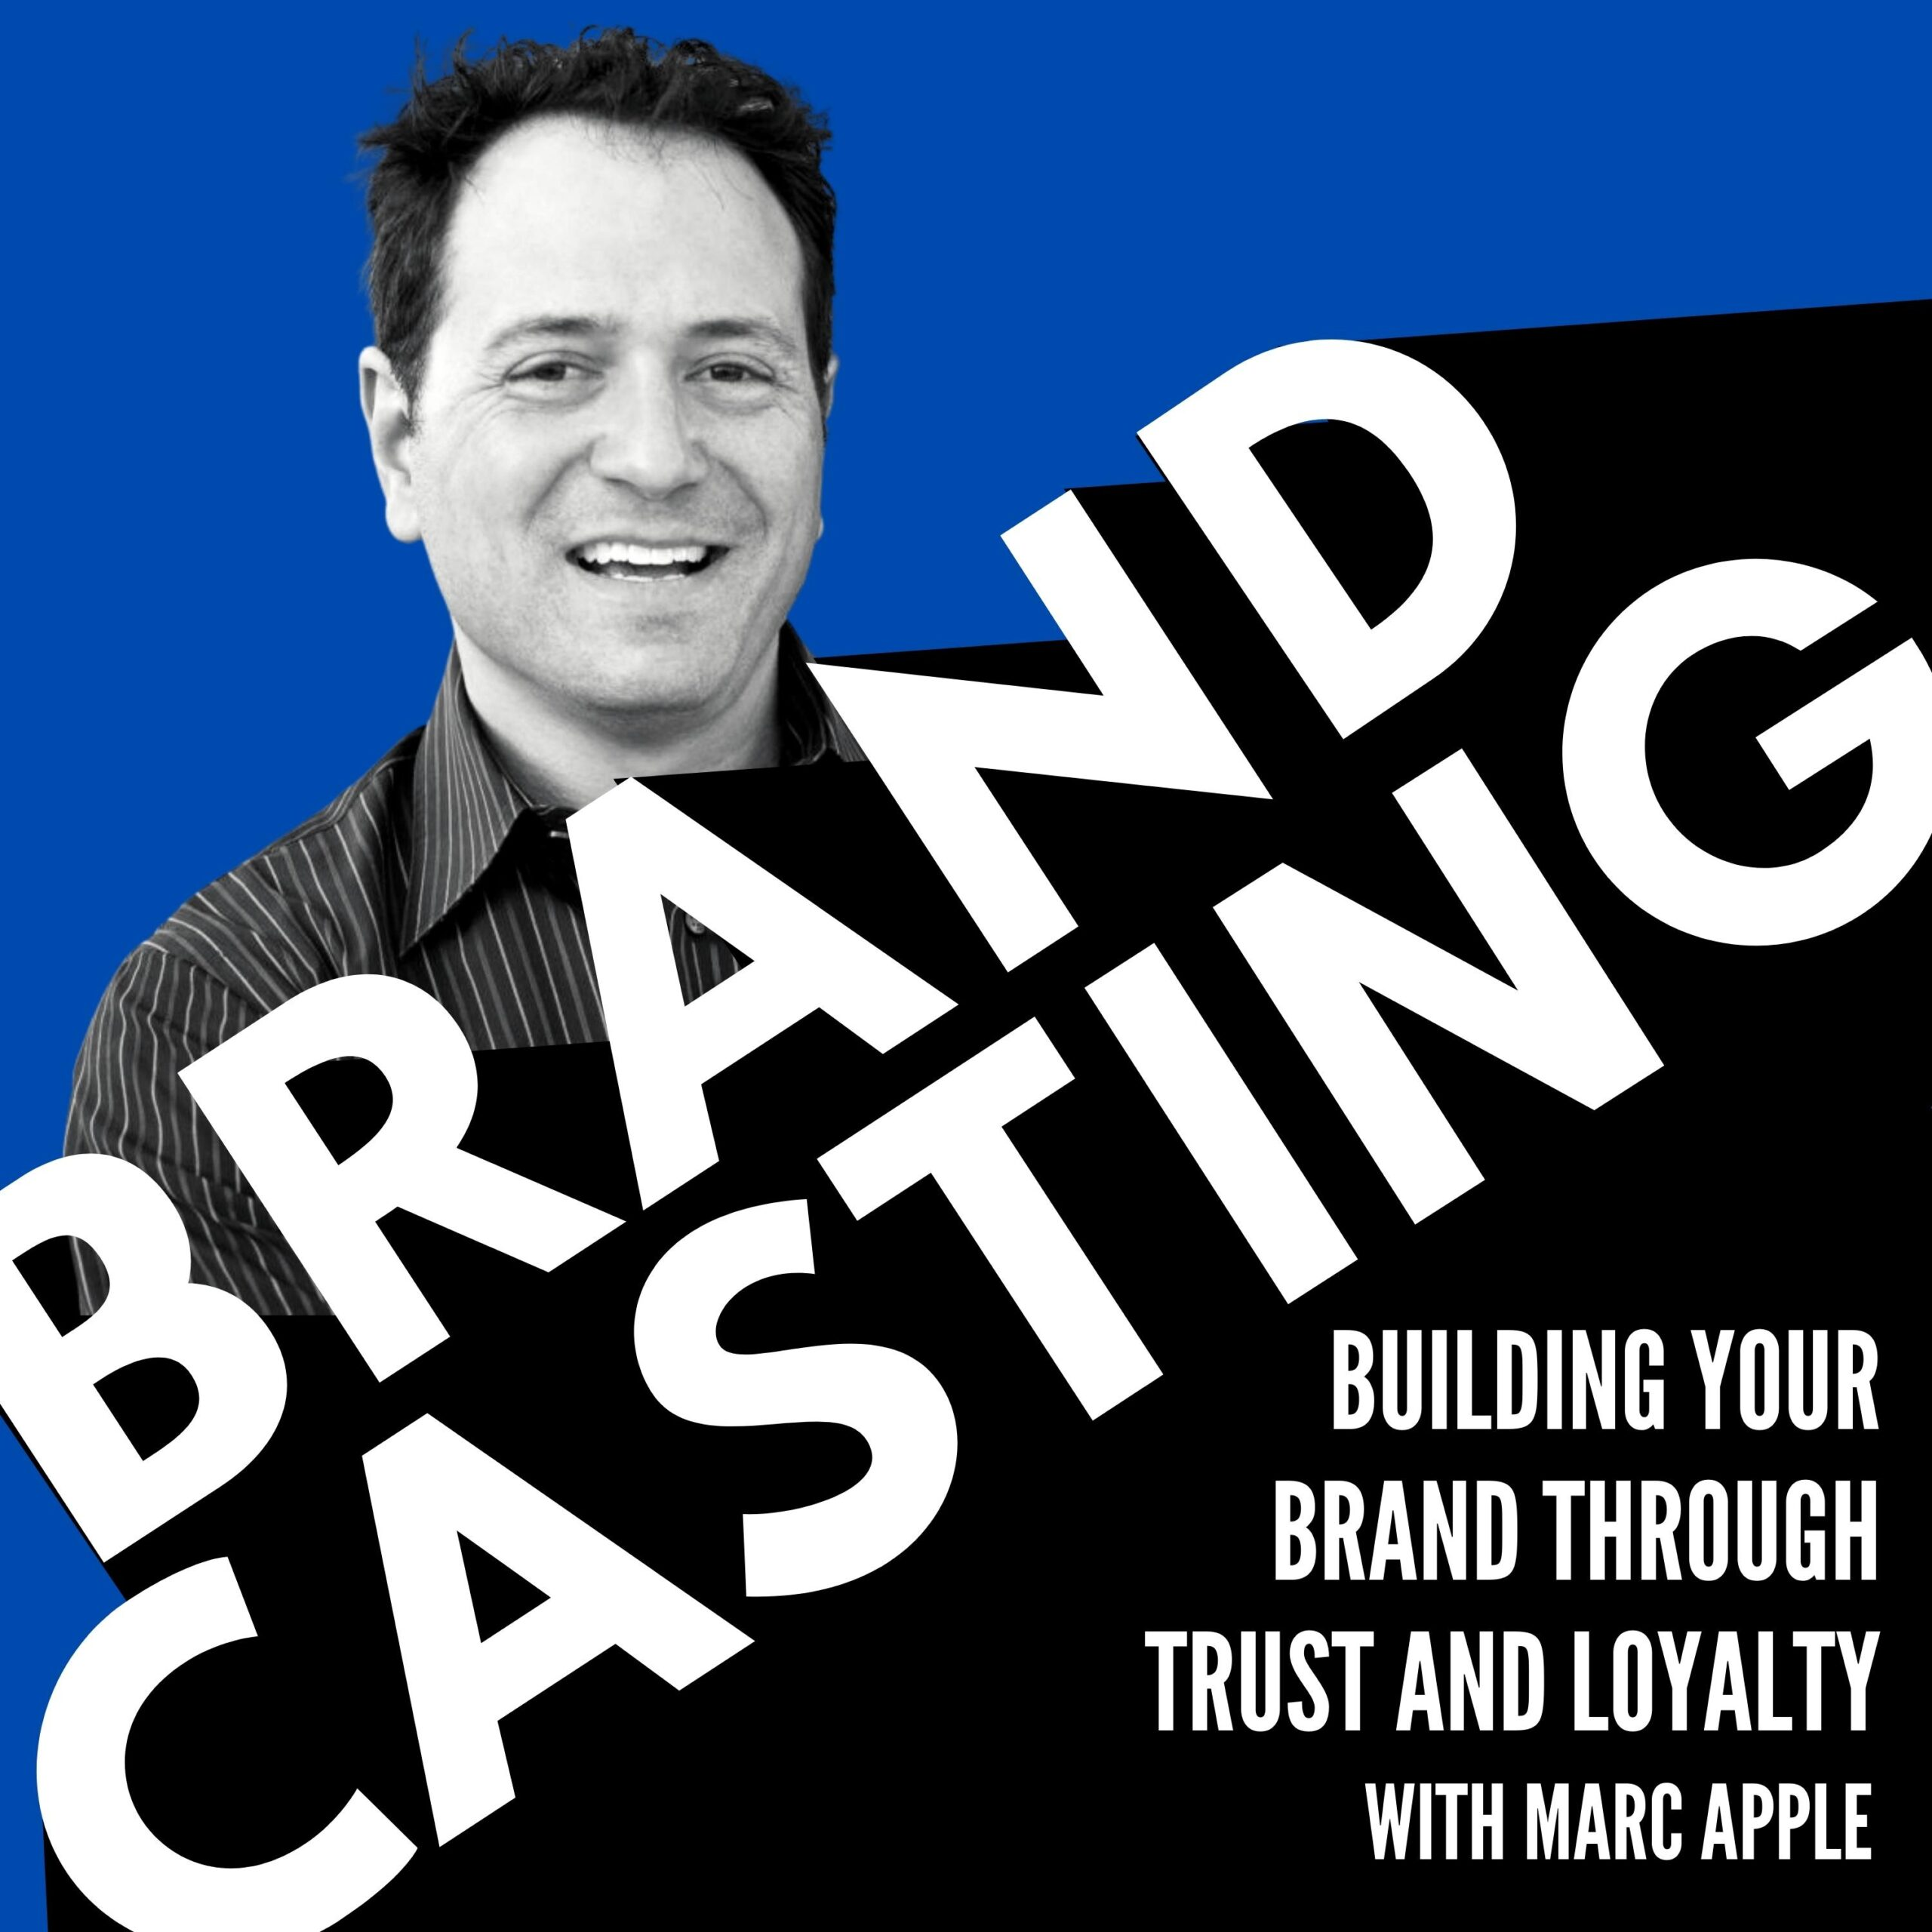 Brandcasting: Build Your Brand Through Trust and Loyalty